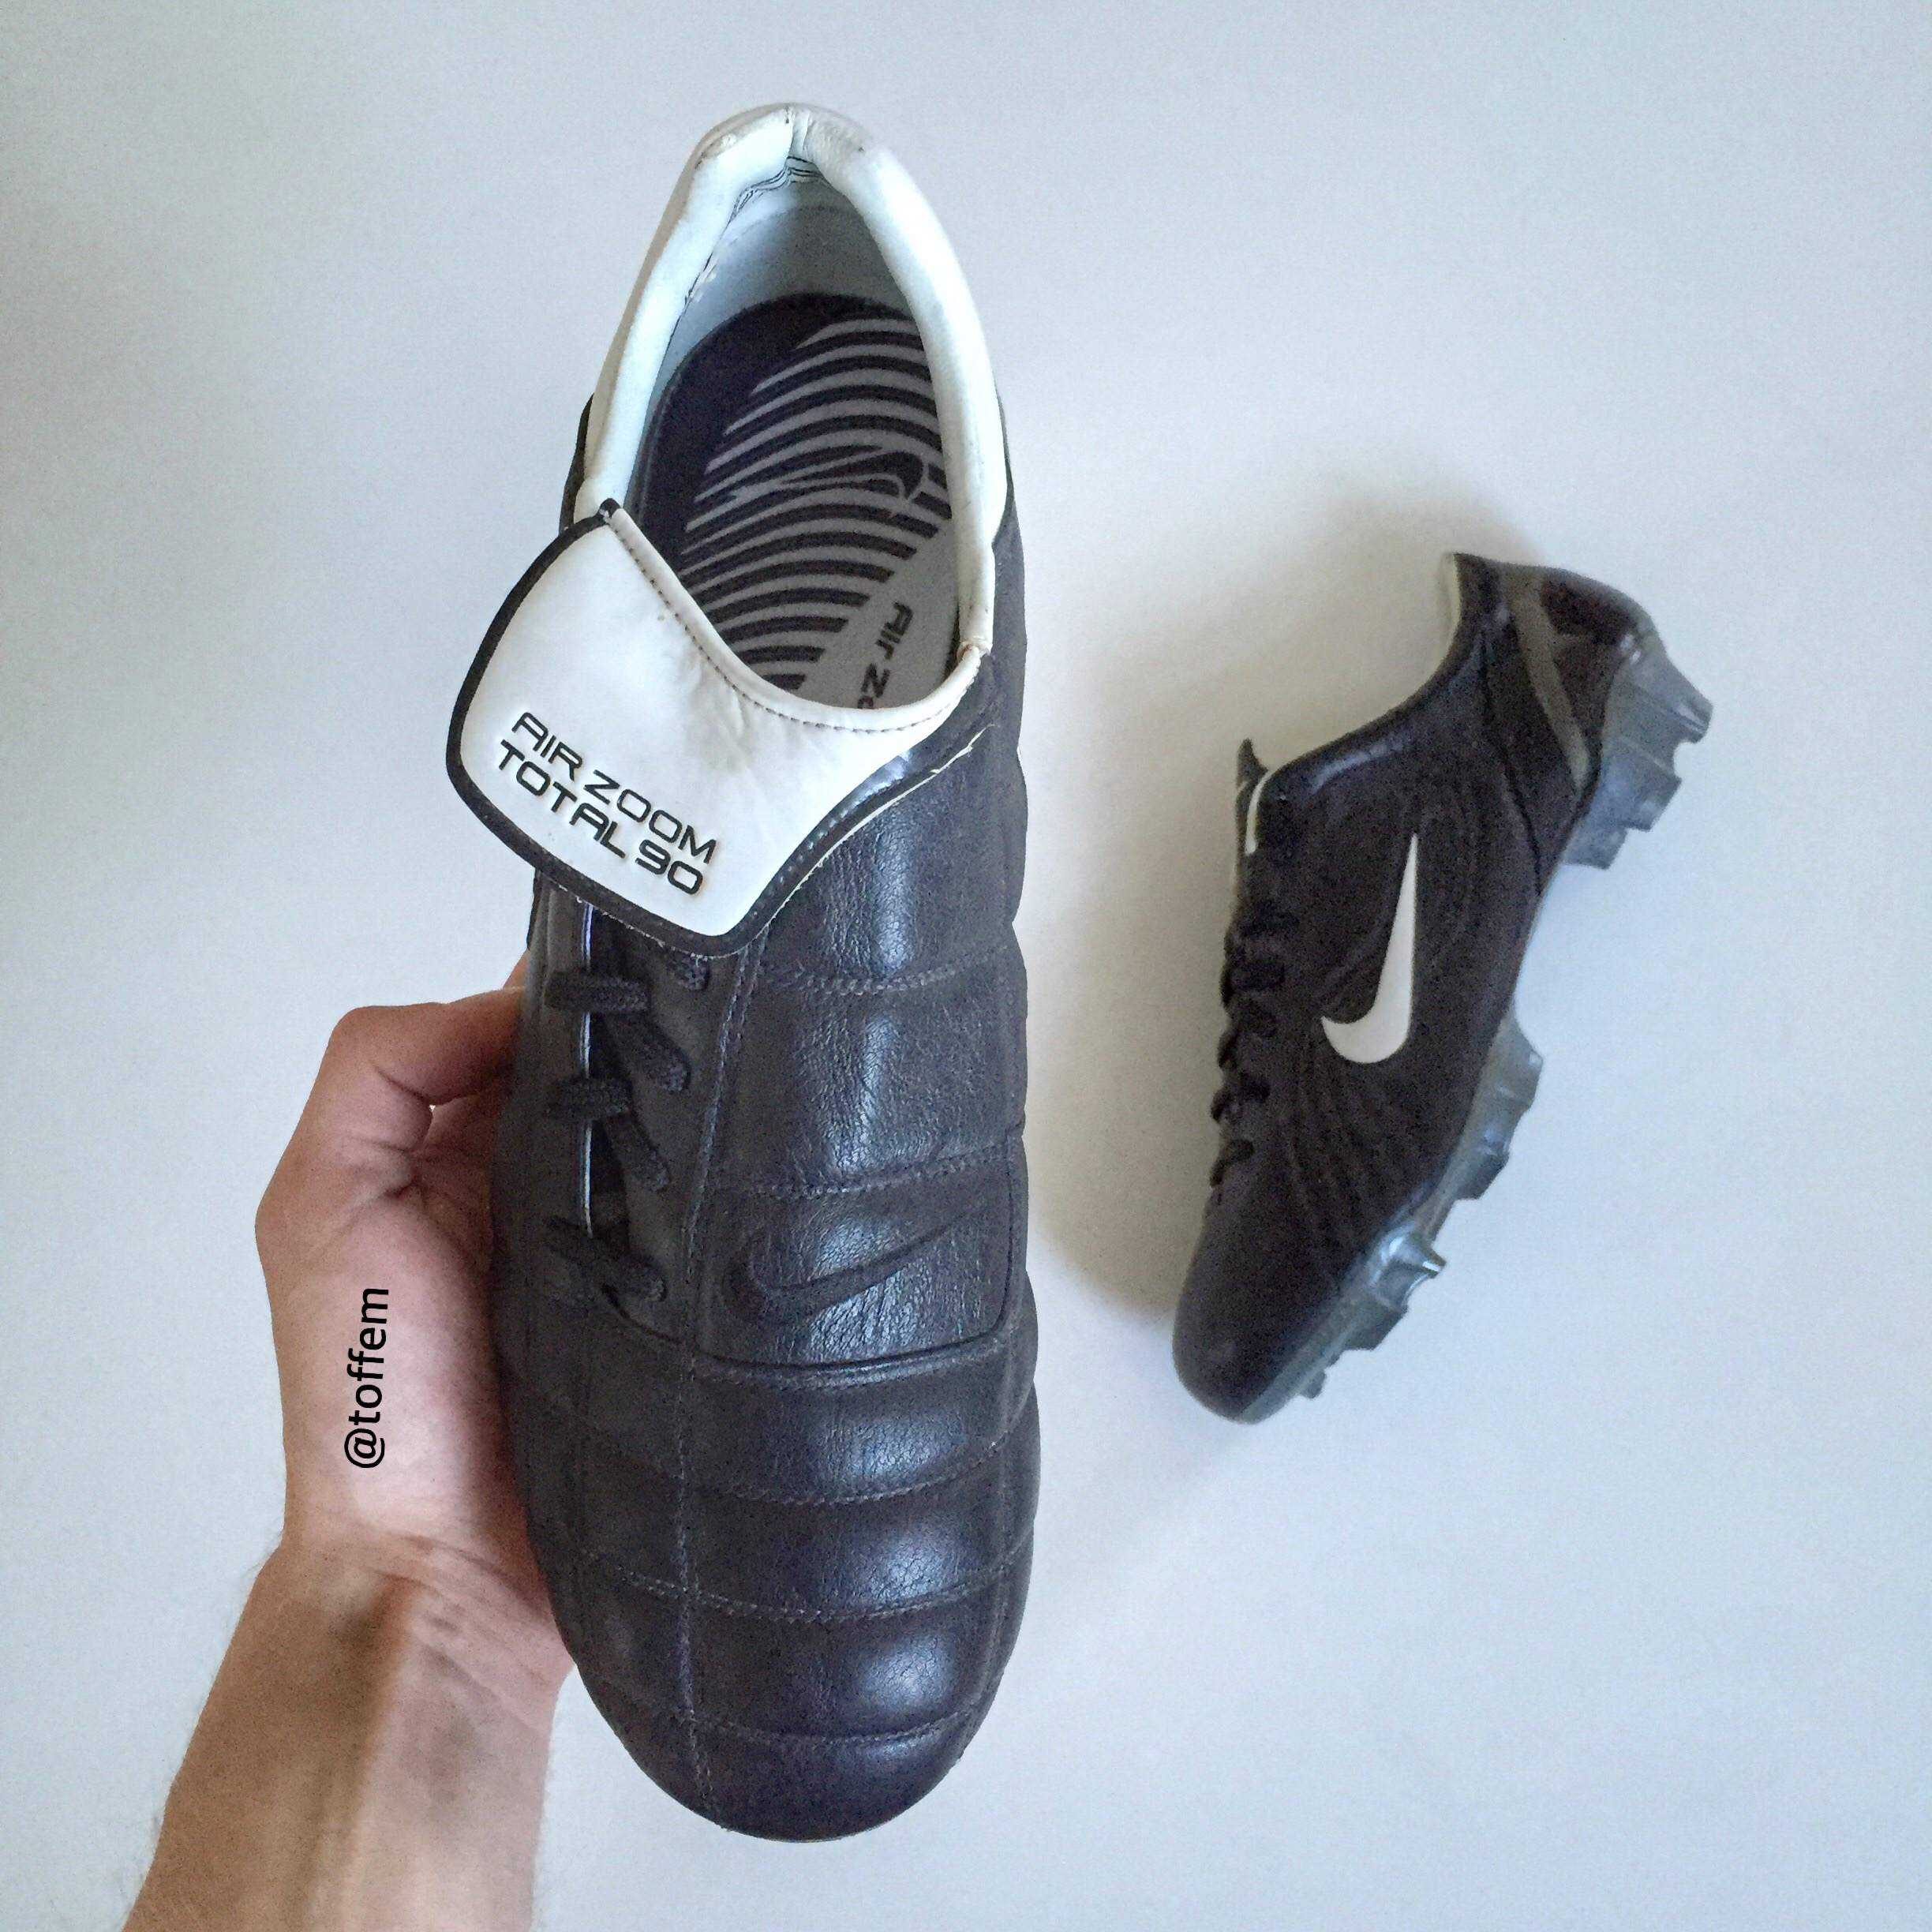 4a72386a24036 Best features on the boots are definitely the black leather and the  stiching! You can really see that they are high quality. For me who have  always been a ...